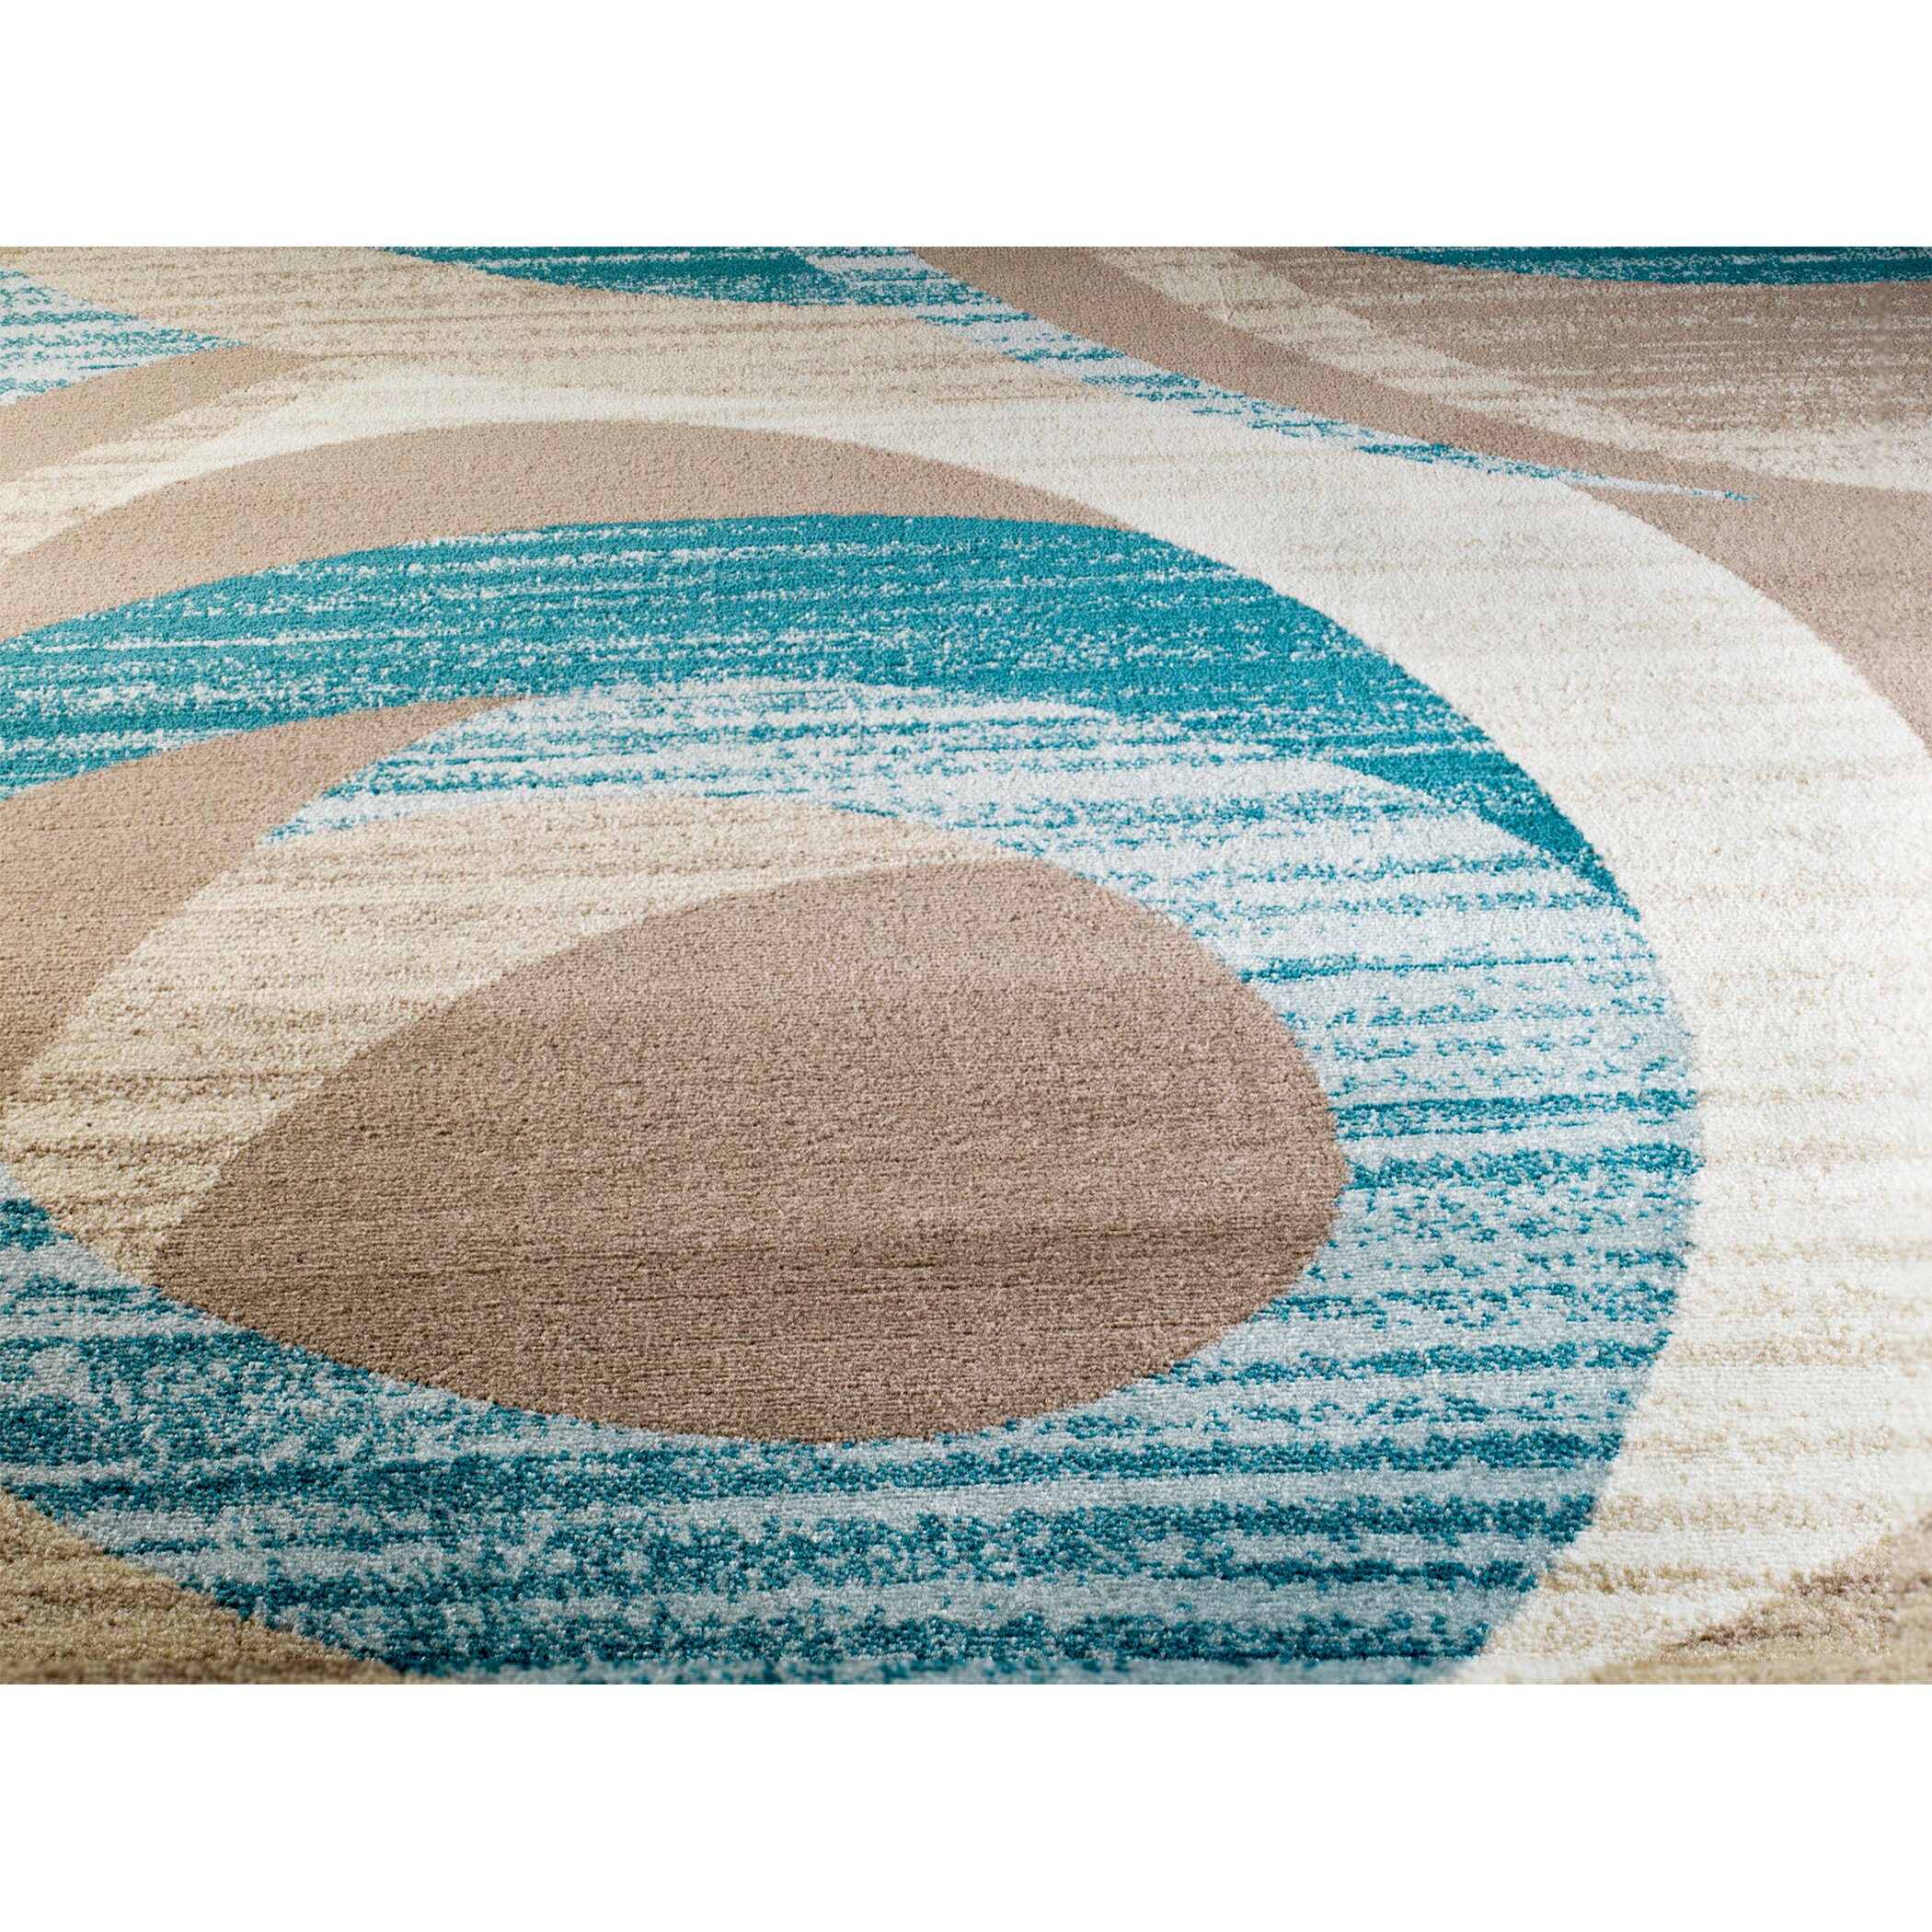 Turquoise Kitchen Rugs New Rug In The: Rug And Decor Inc. Summit Turquoise Area Rug & Reviews